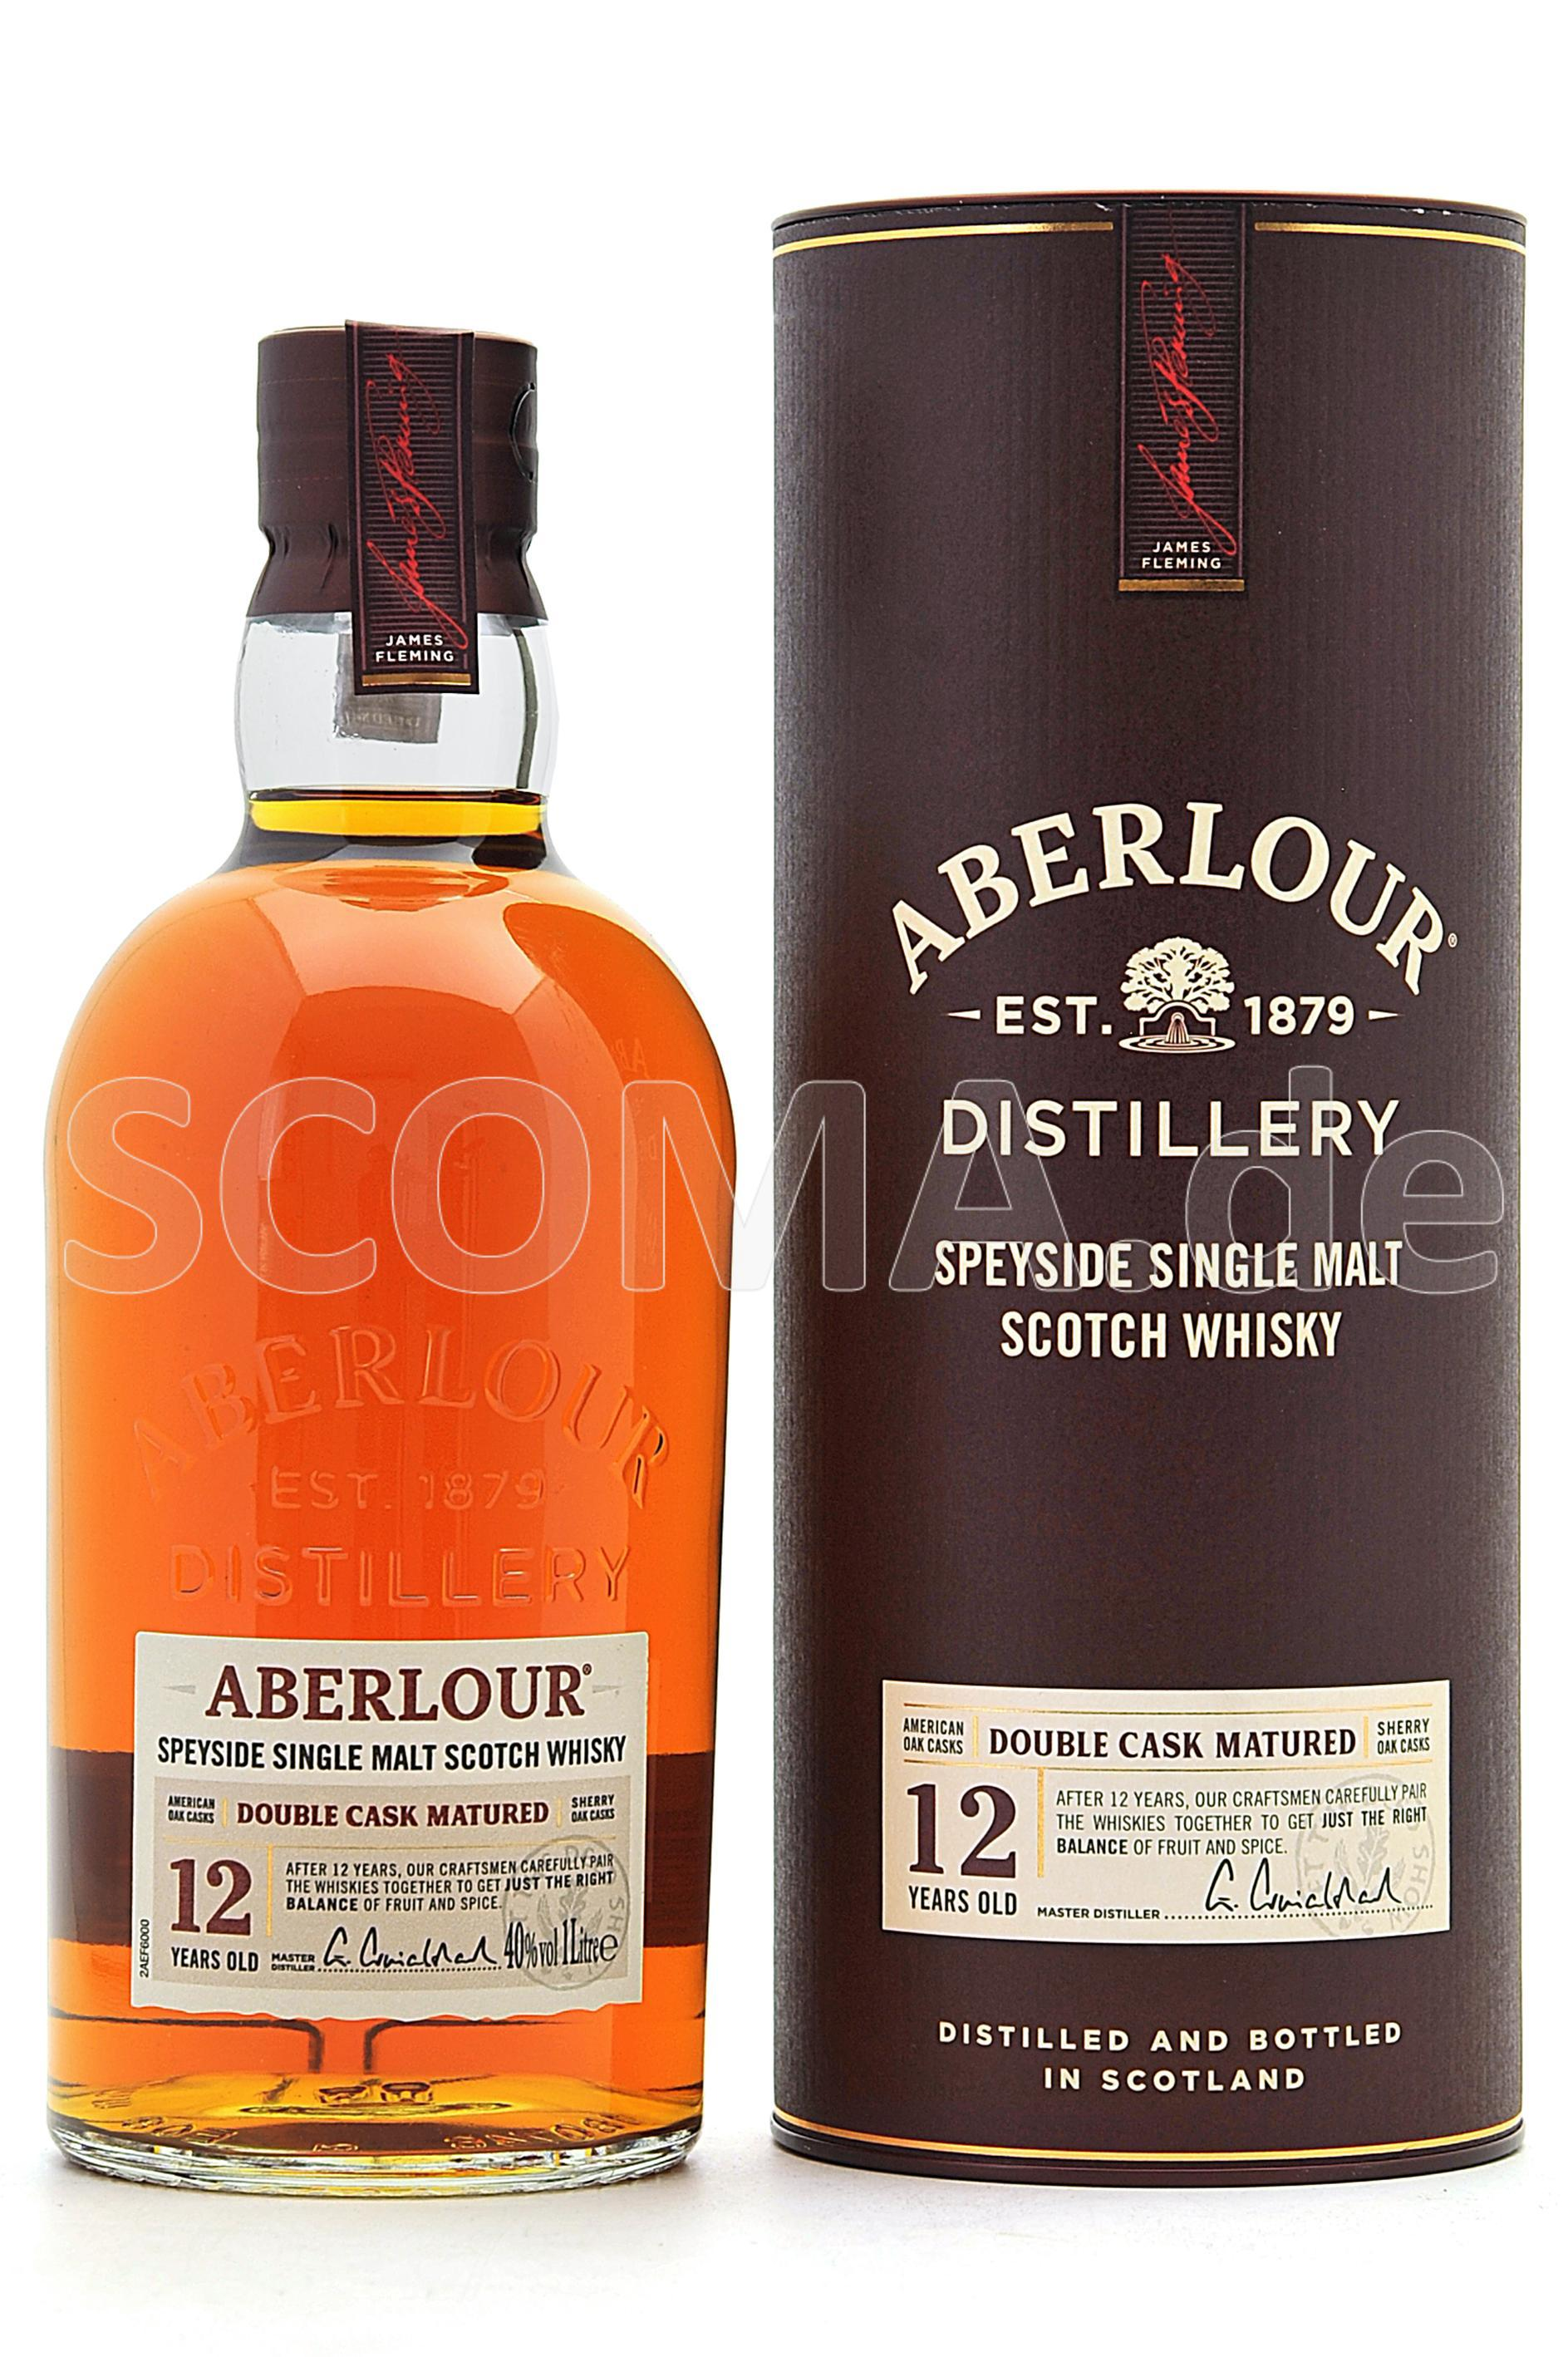 Aberlour 12 years Double Cask